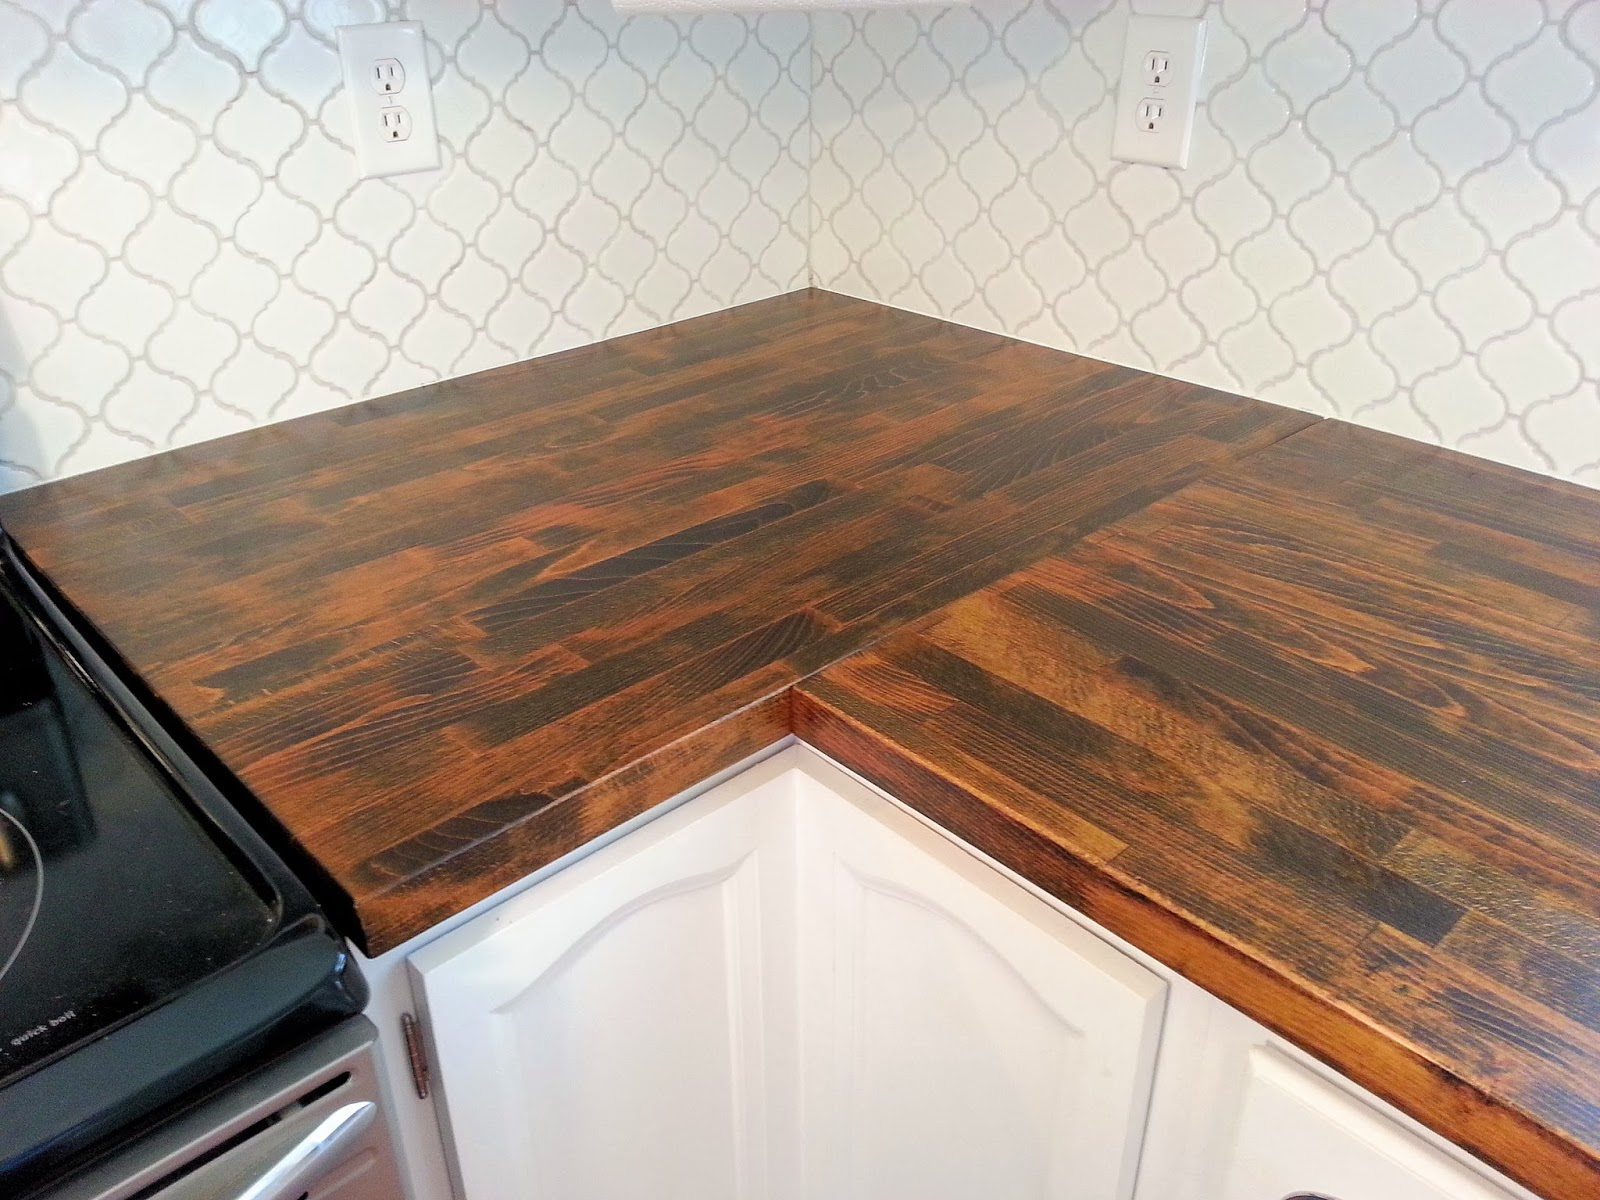 Stained Ikea Butcher Block Countertop And Moroccan Tile Backsplash (Quasi)  Reveal | We Own Blackacre